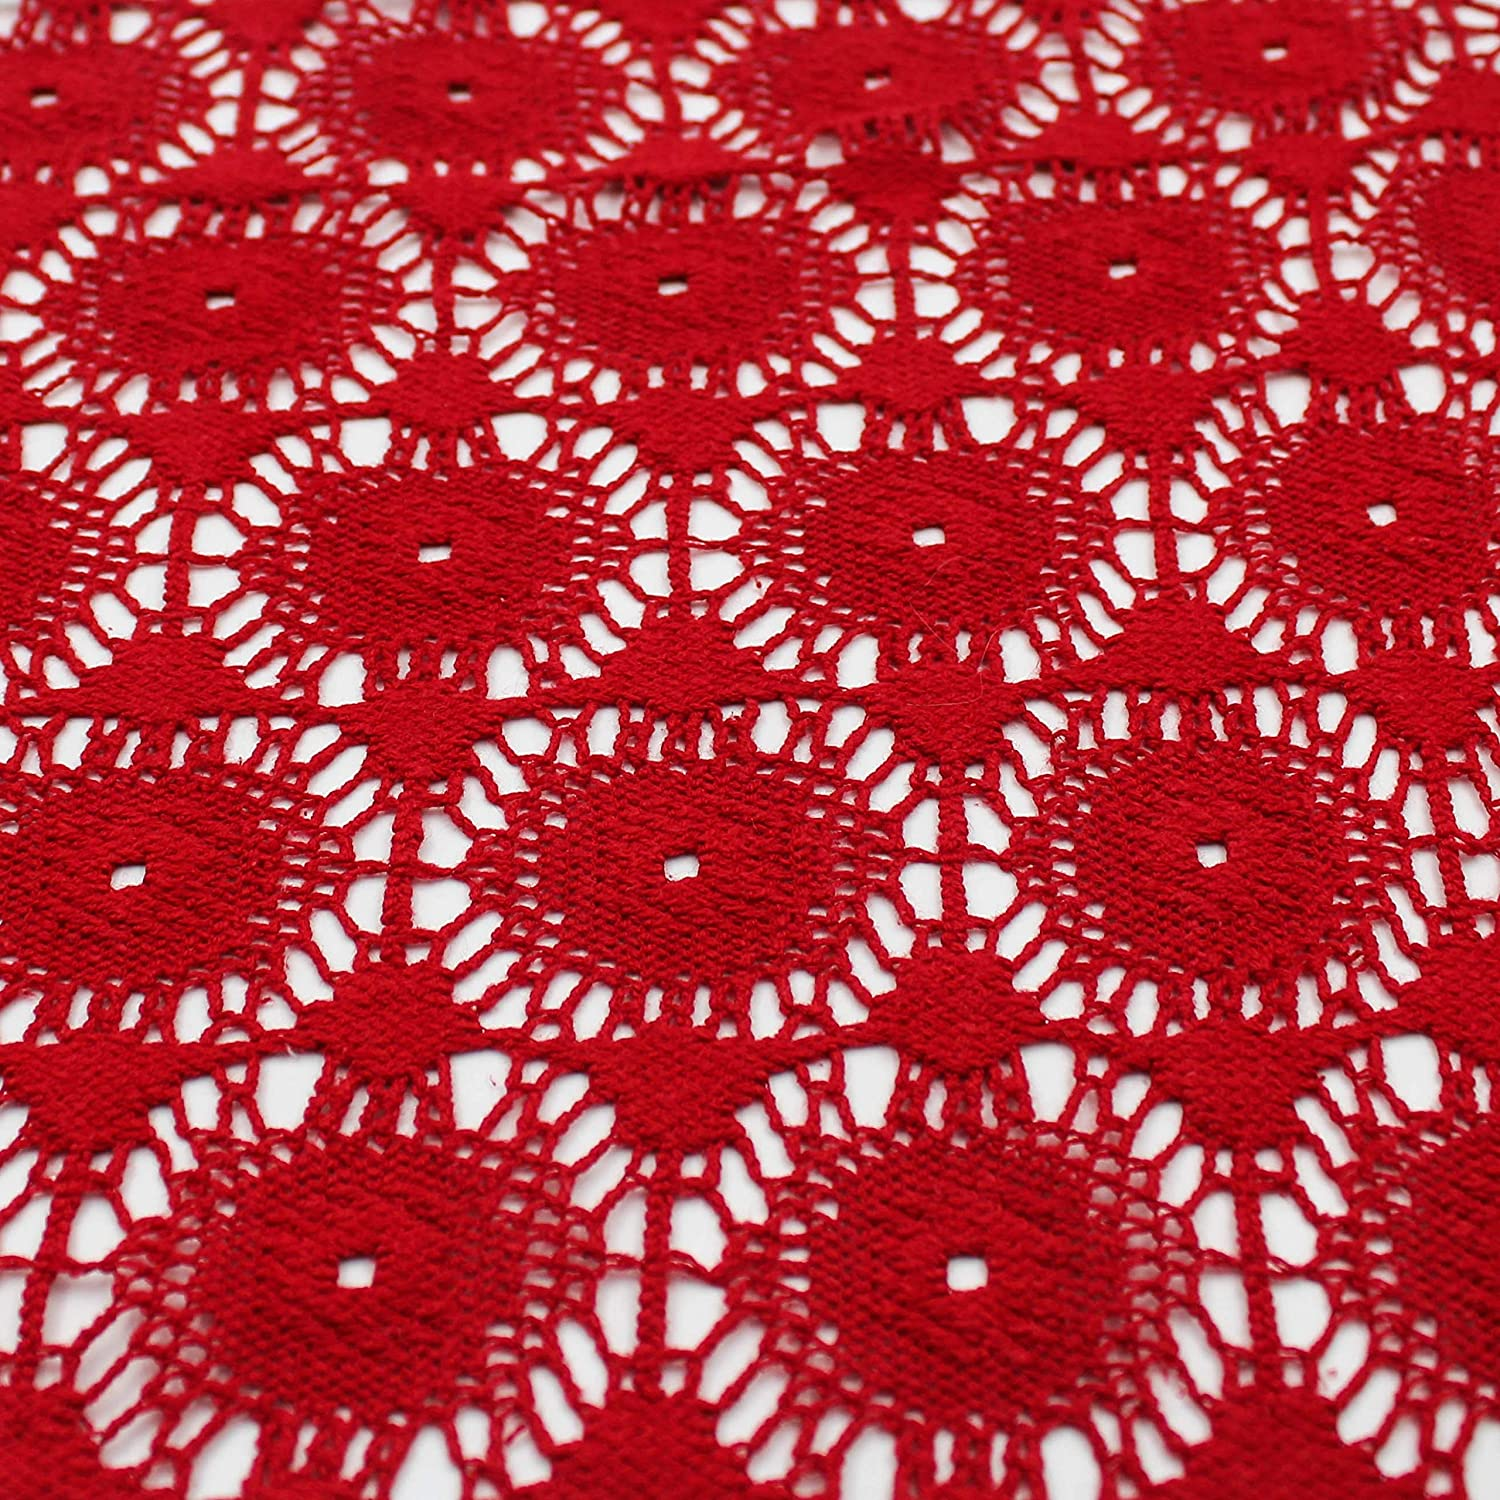 Red Cotton Polyester Lace Fabric - Apple Core